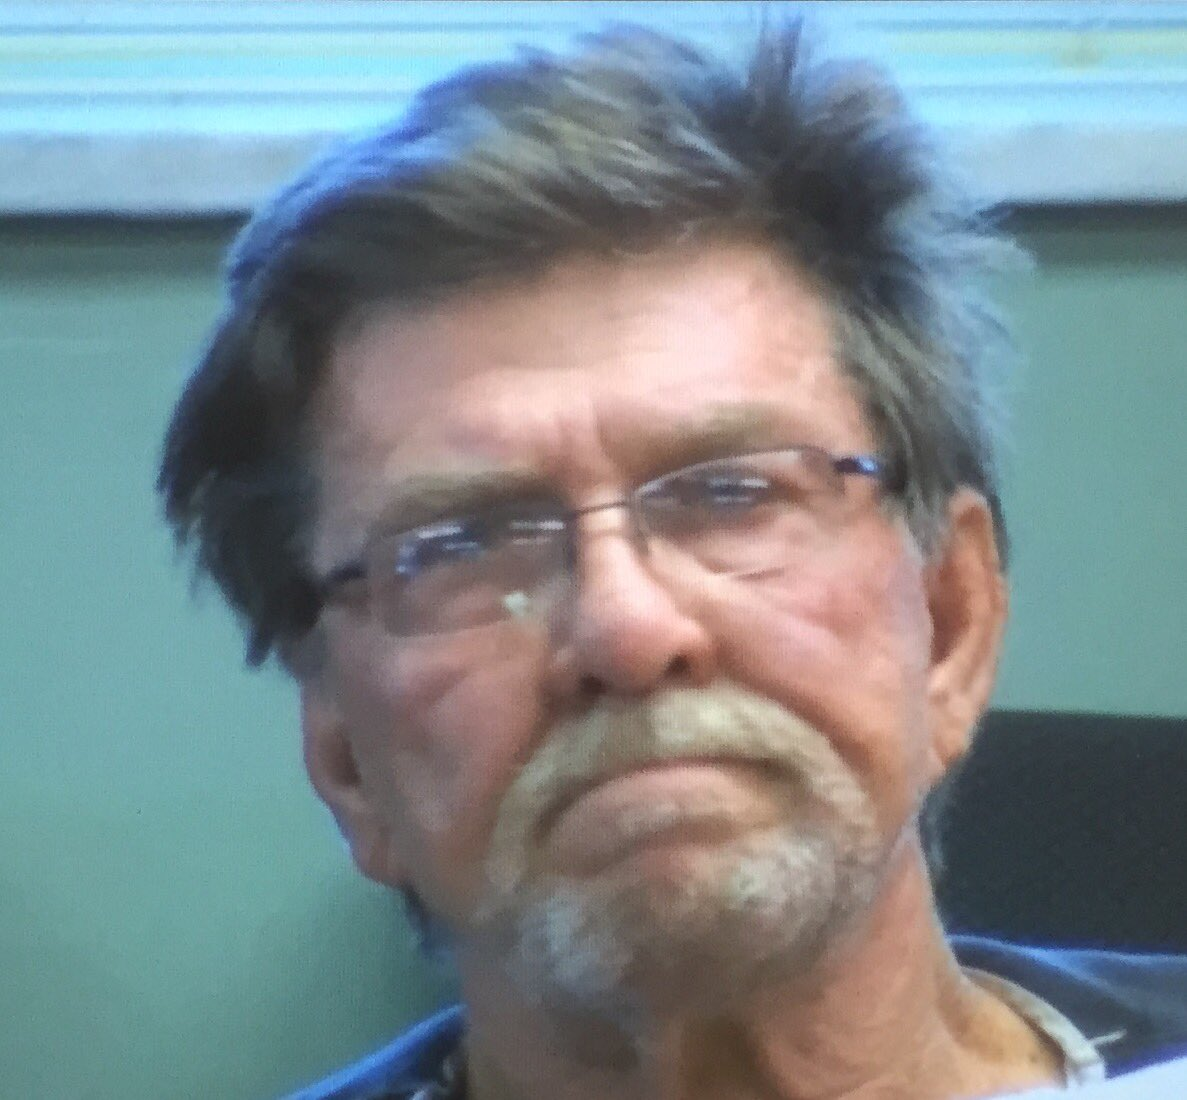 Jury finds former Mobile Co Constable Larry Sheffield guilty of murdering Jeffrey McMillian. @FOX10News